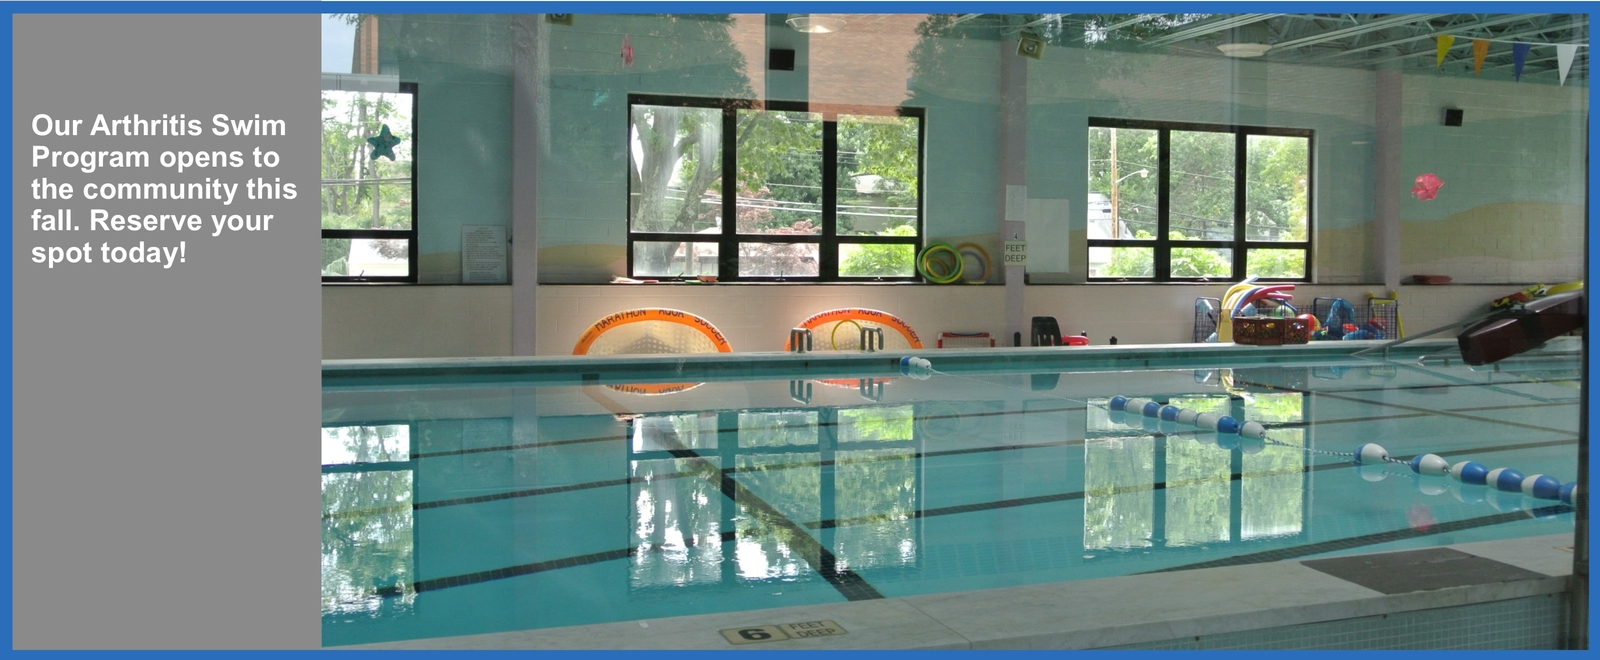 Our Arthritis Swim Program opens to the community this fall. Reserve your spot today!